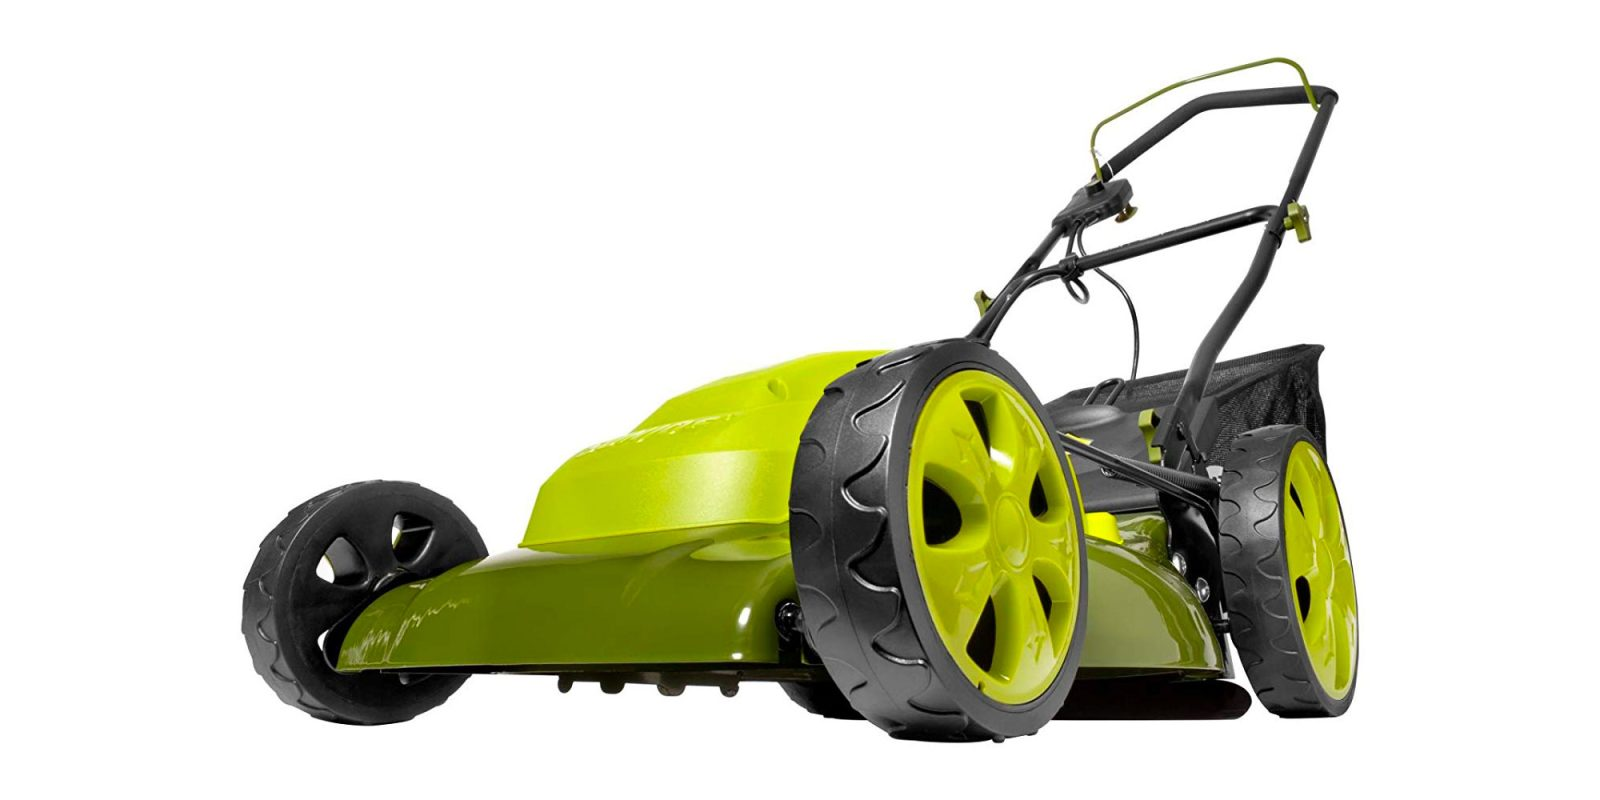 Sun Joe's 20-inch electric lawn mower hits new low of $89 (25%+ off)